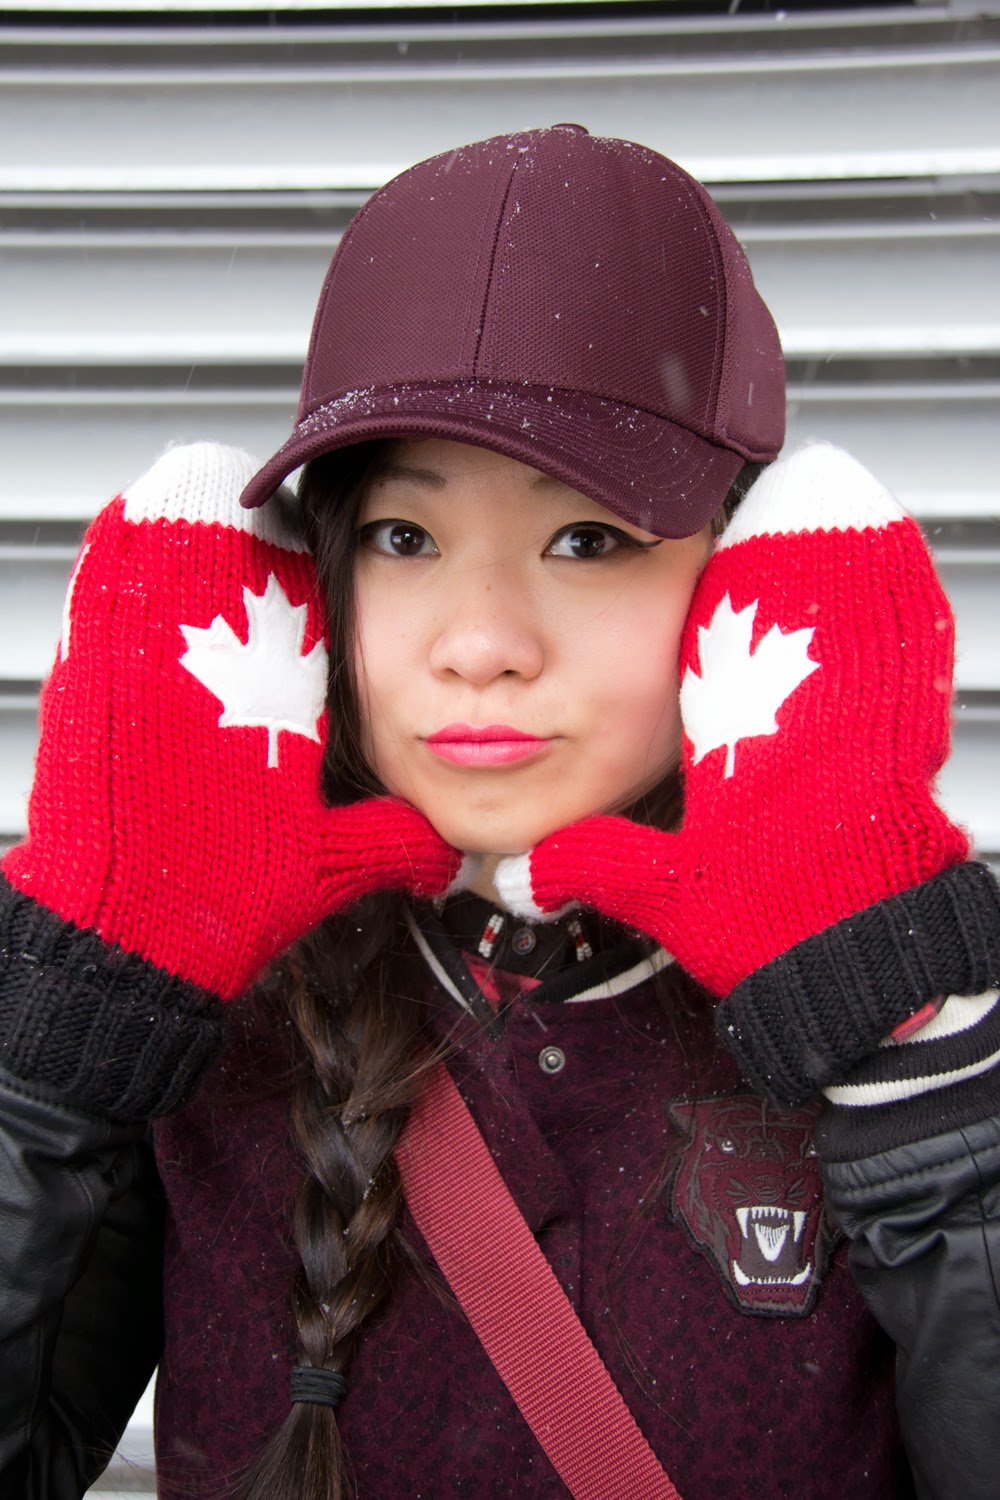 Go-Canada-Mittens, Burgundy-Baseball-Cap, Red-Maple-Leaf, Winter-Olympic